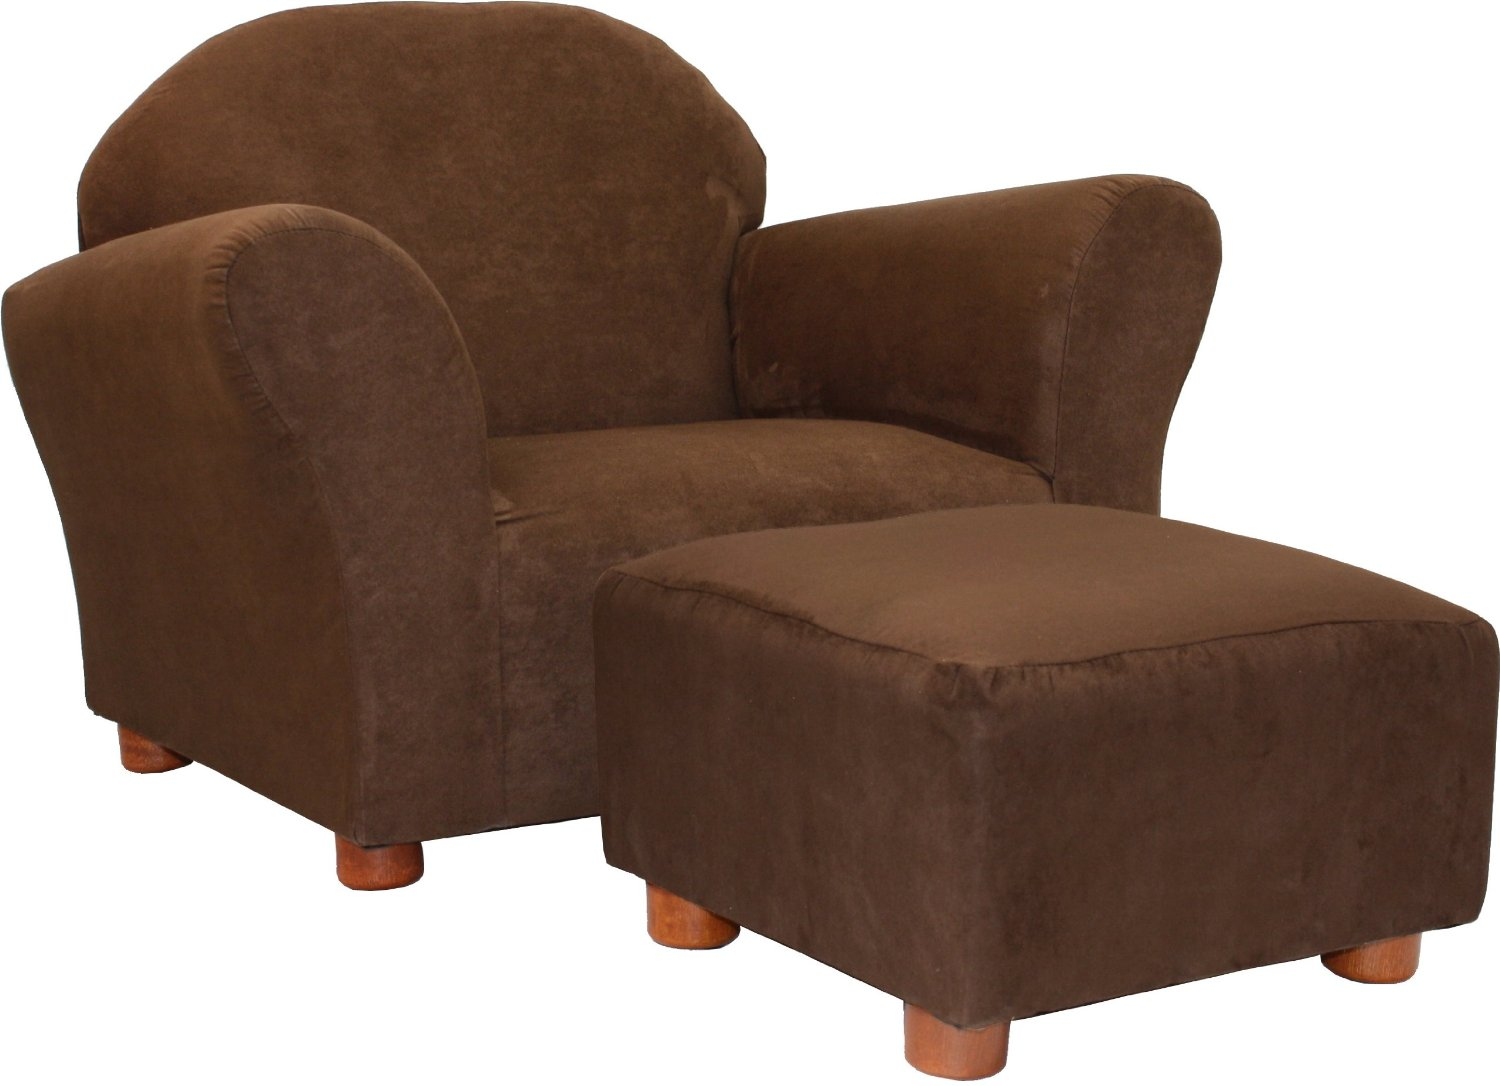 Kids  Toddler Chair and Ottoman Sets